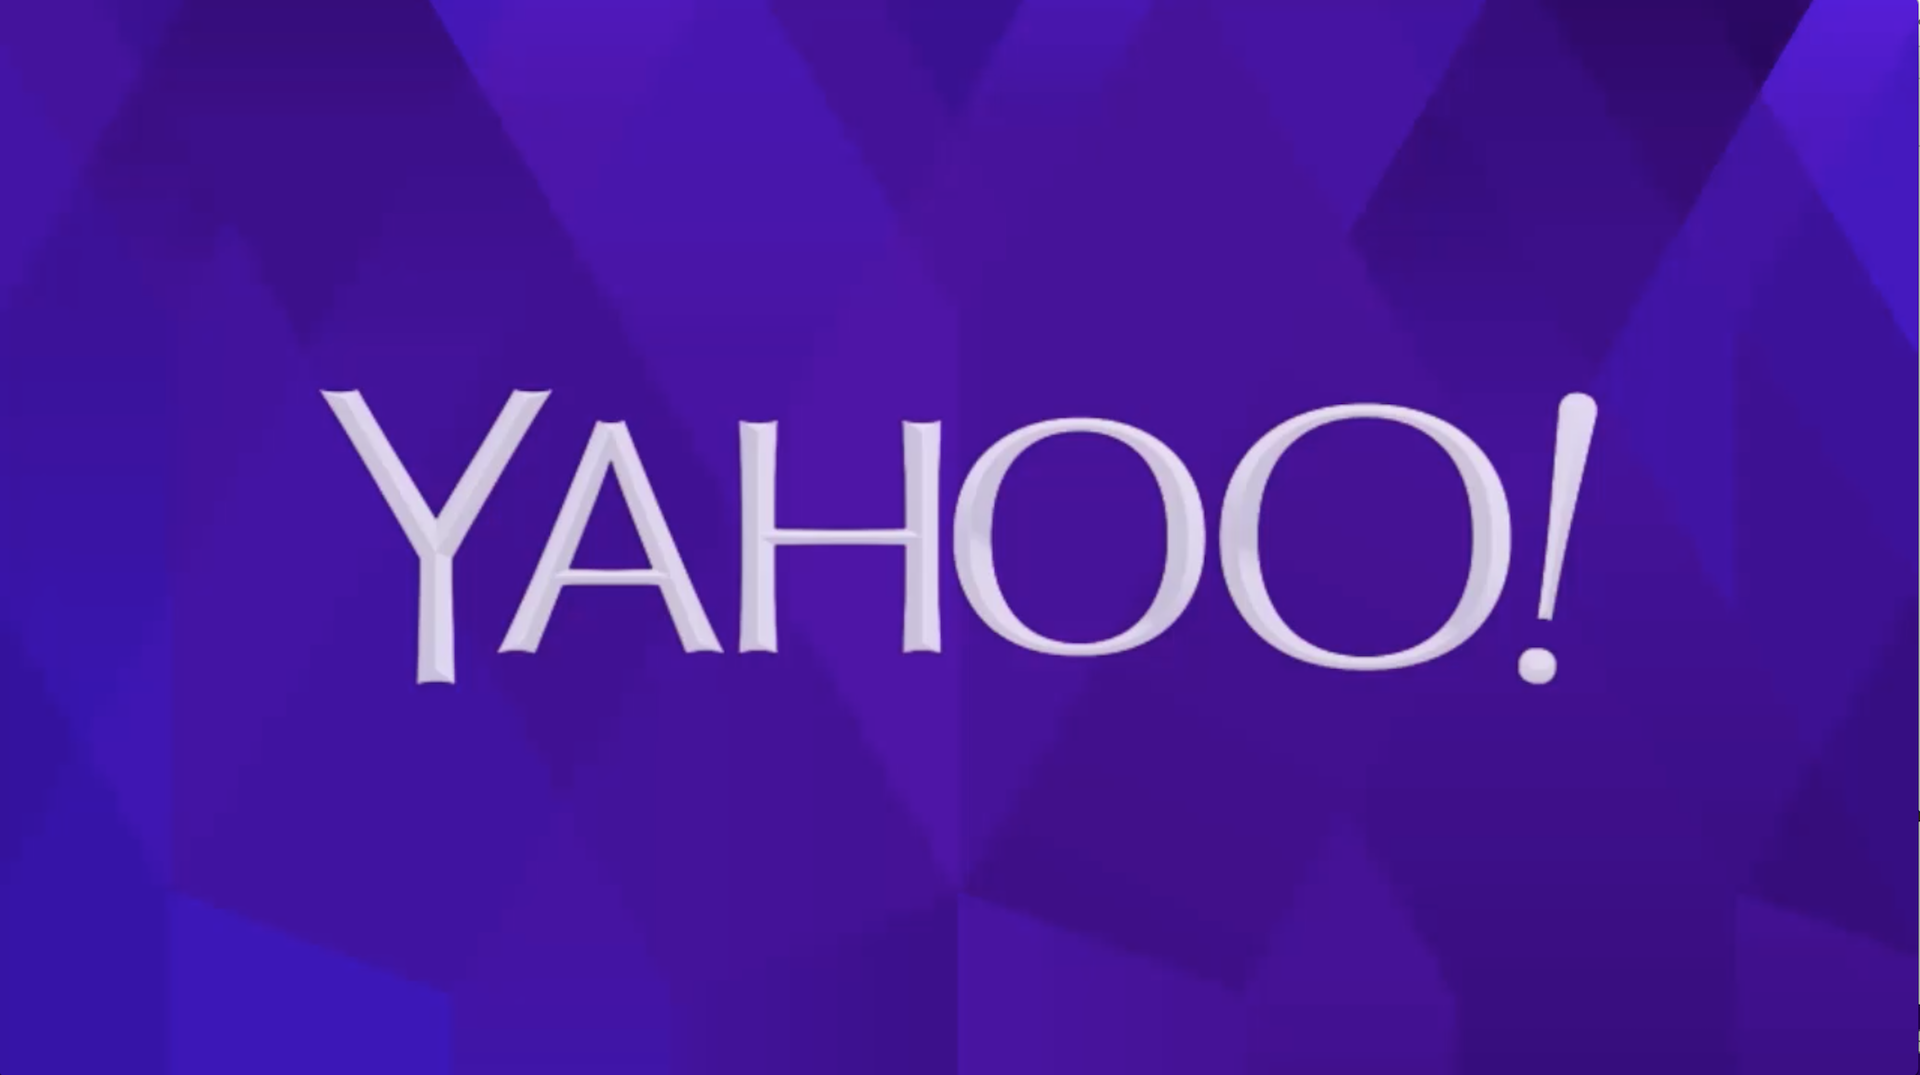 Yahoo Stock Quote Awesome Stocks Pop As Syria Escalation Fears Wane  Syria Design Inspiration